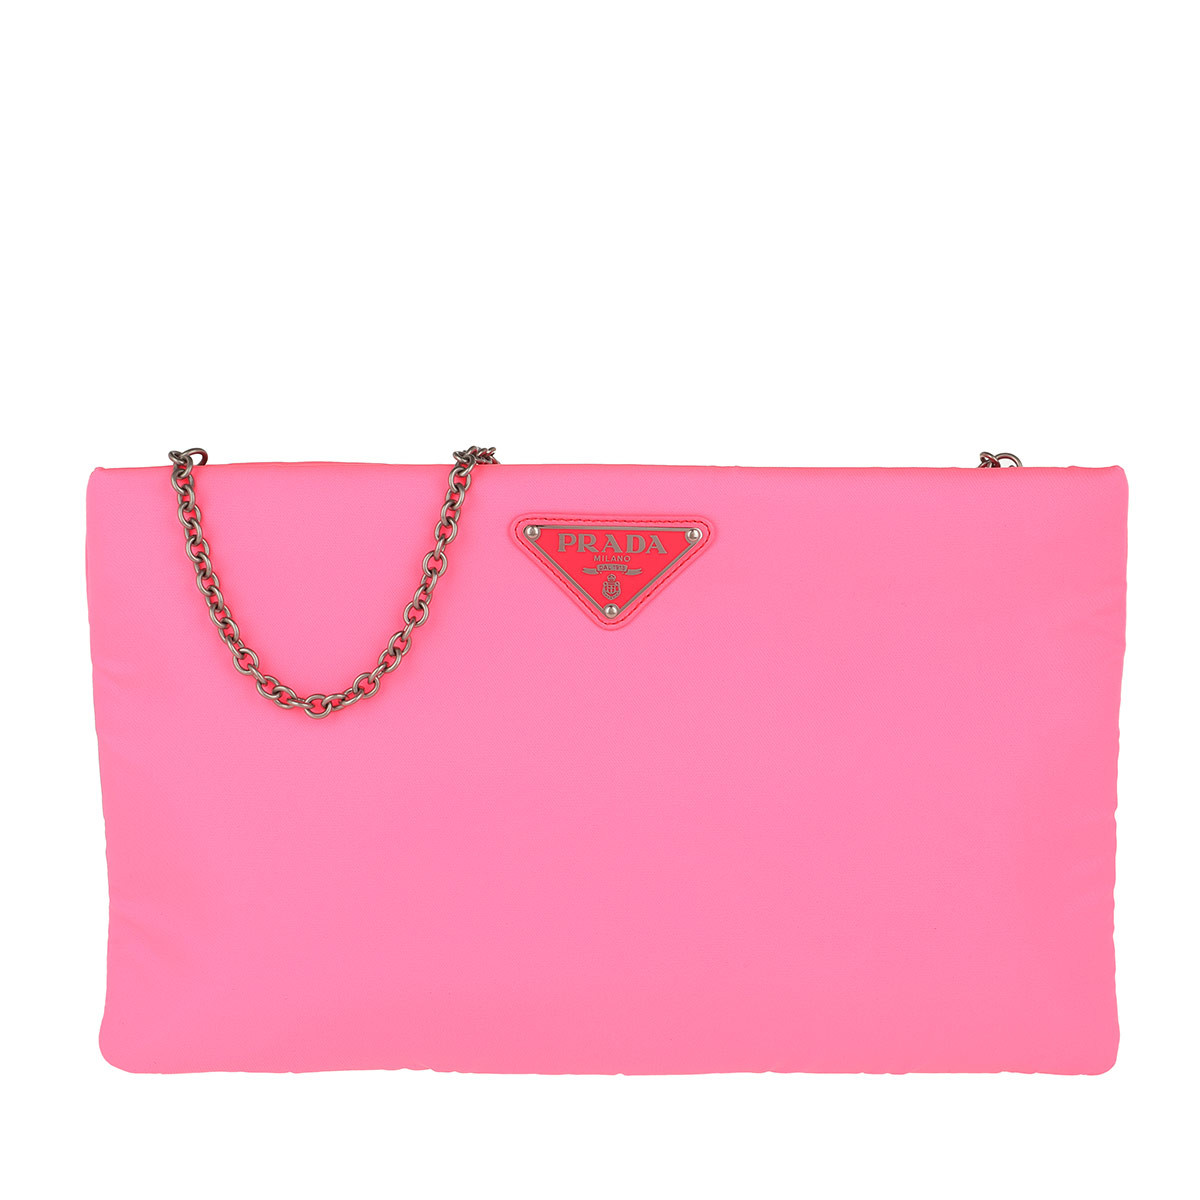 Prada Clutch - Padded Nylon Clutch Medium Neon Pink - in pink - für Damen